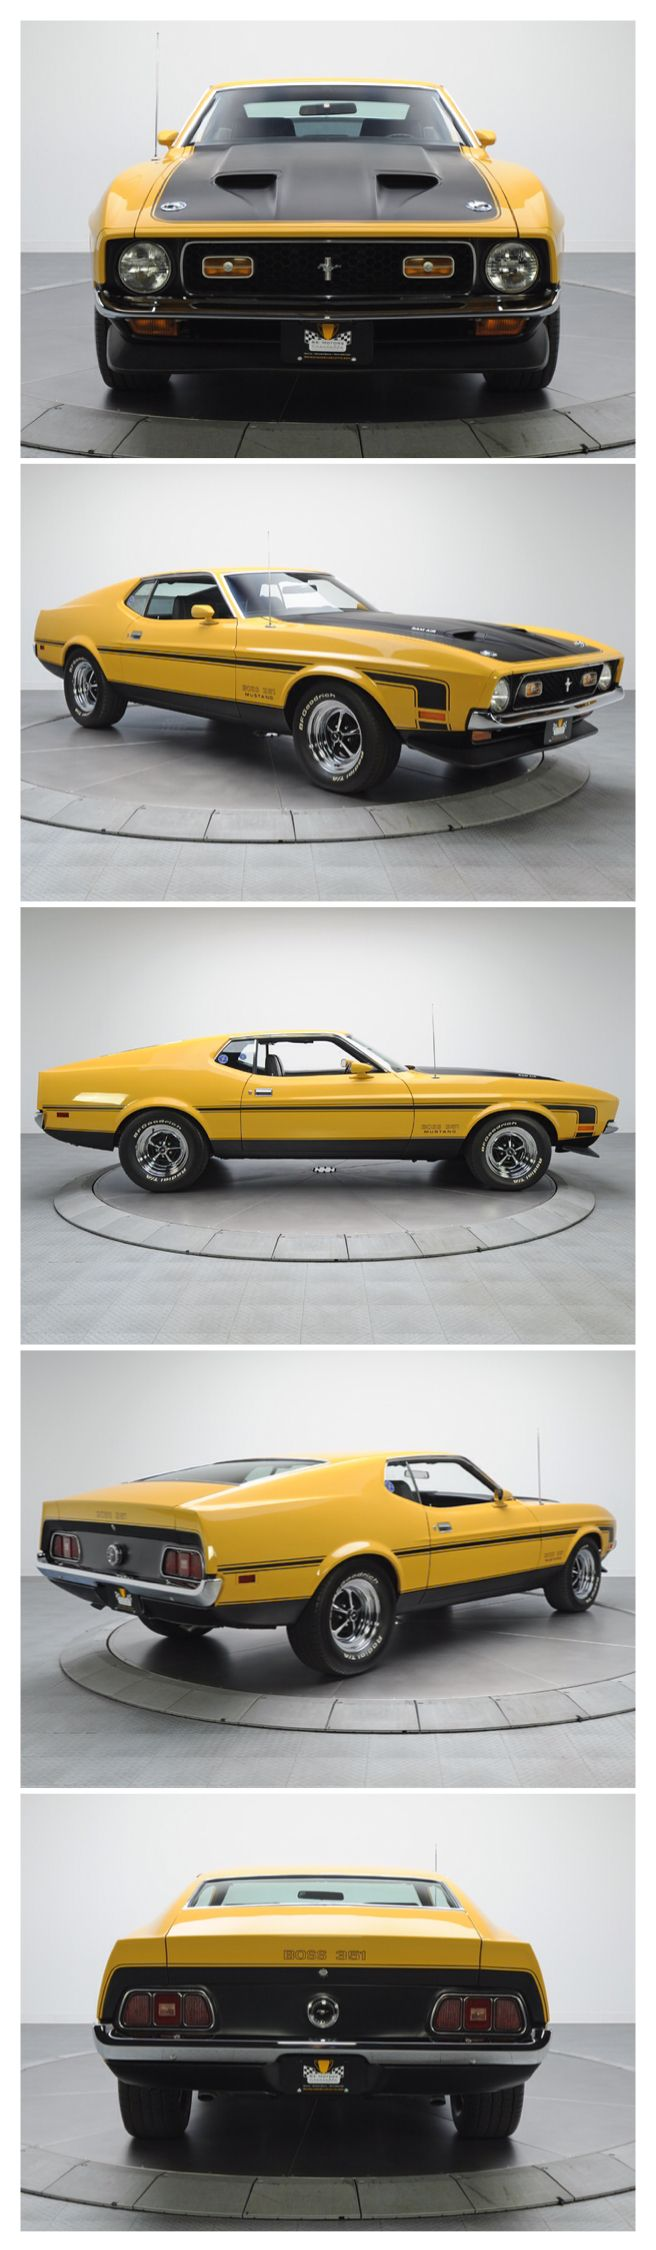 1971 Ford Mustang Boss Visit http://www.holmestuttle.com/..Brought to you by #HouseofInsurance #NeedcarInsinEugeneOregon                                                                                                                                                      Más